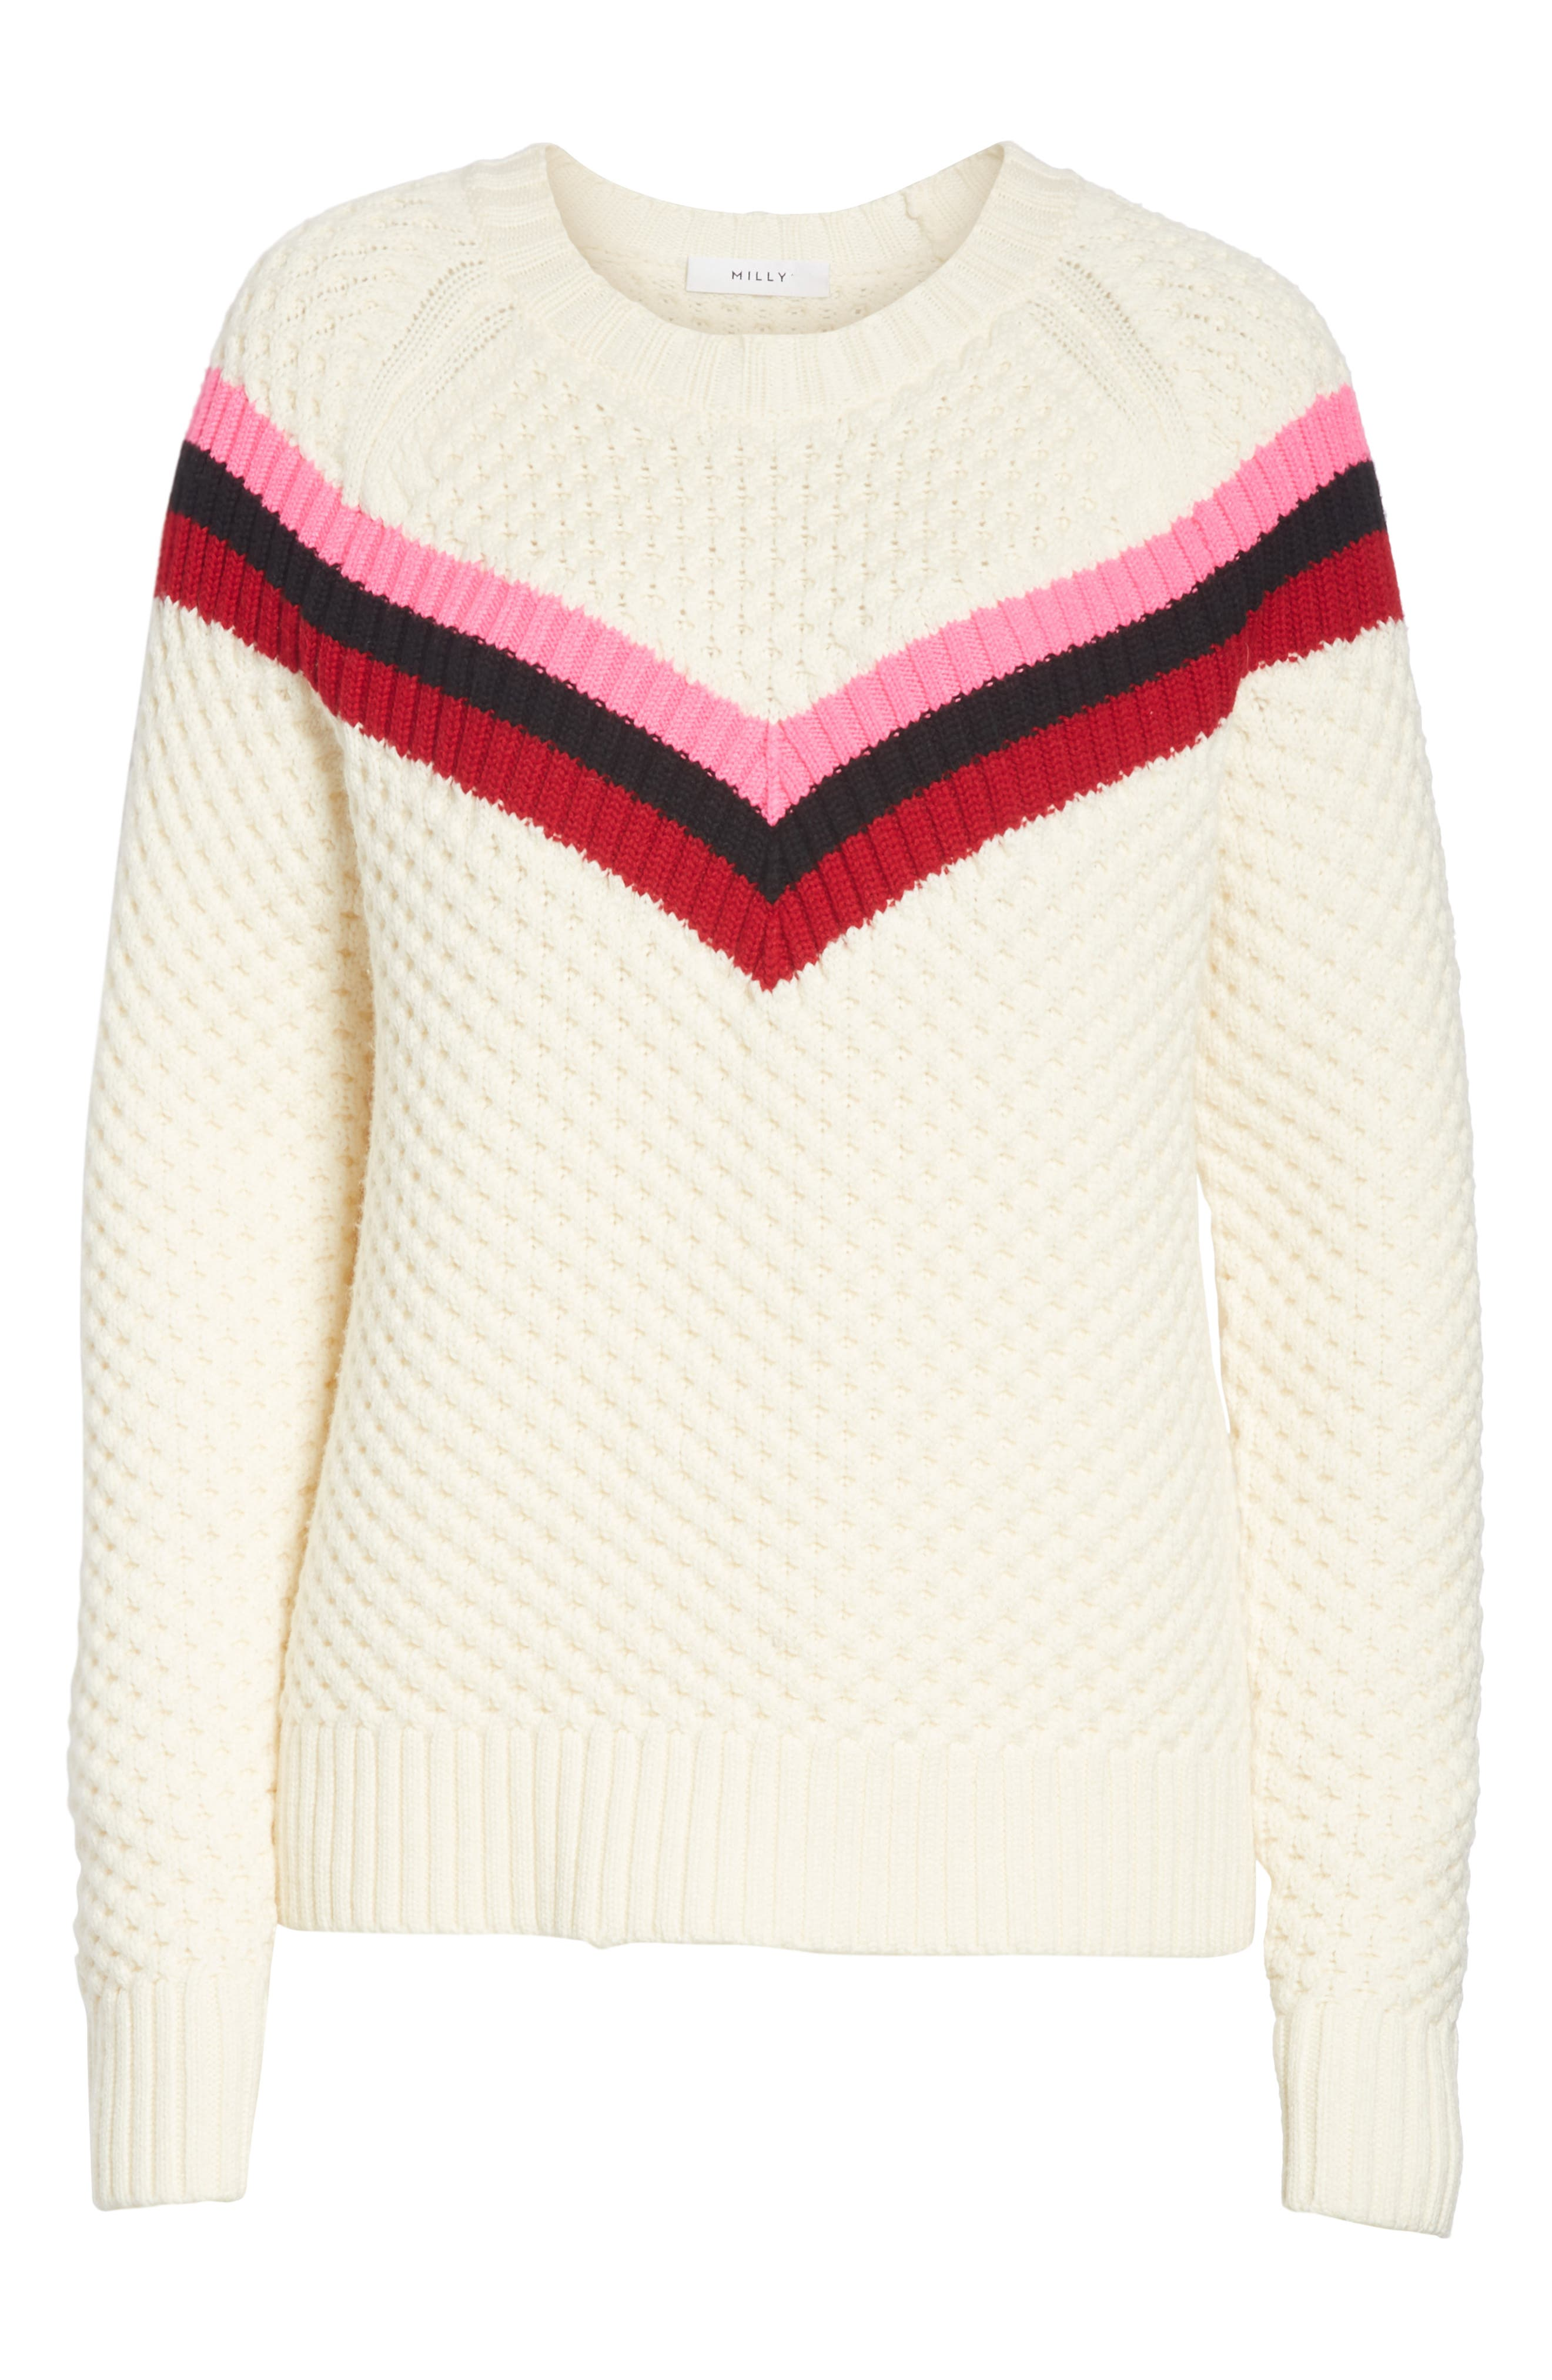 Varsity Stripe Popcorn Stitch Wool Blend Sweater,                             Alternate thumbnail 6, color,                             WHITE MULTI